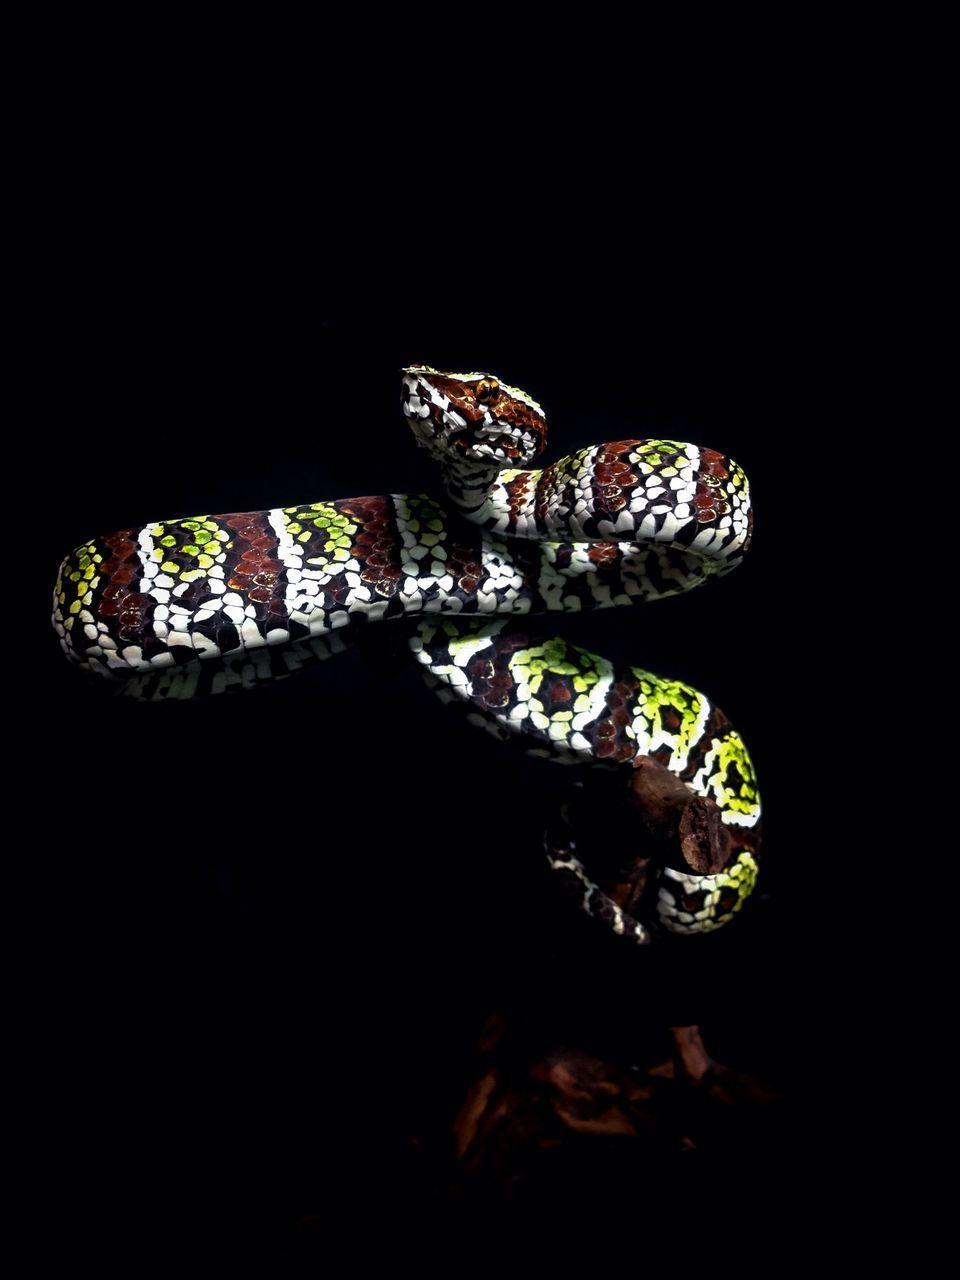 studio shot, black background, indoors, no people, close-up, animal, animal themes, reptile, vertebrate, one animal, copy space, animal wildlife, cut out, reflection, freshness, snake, nature, food, wellbeing, mouth open